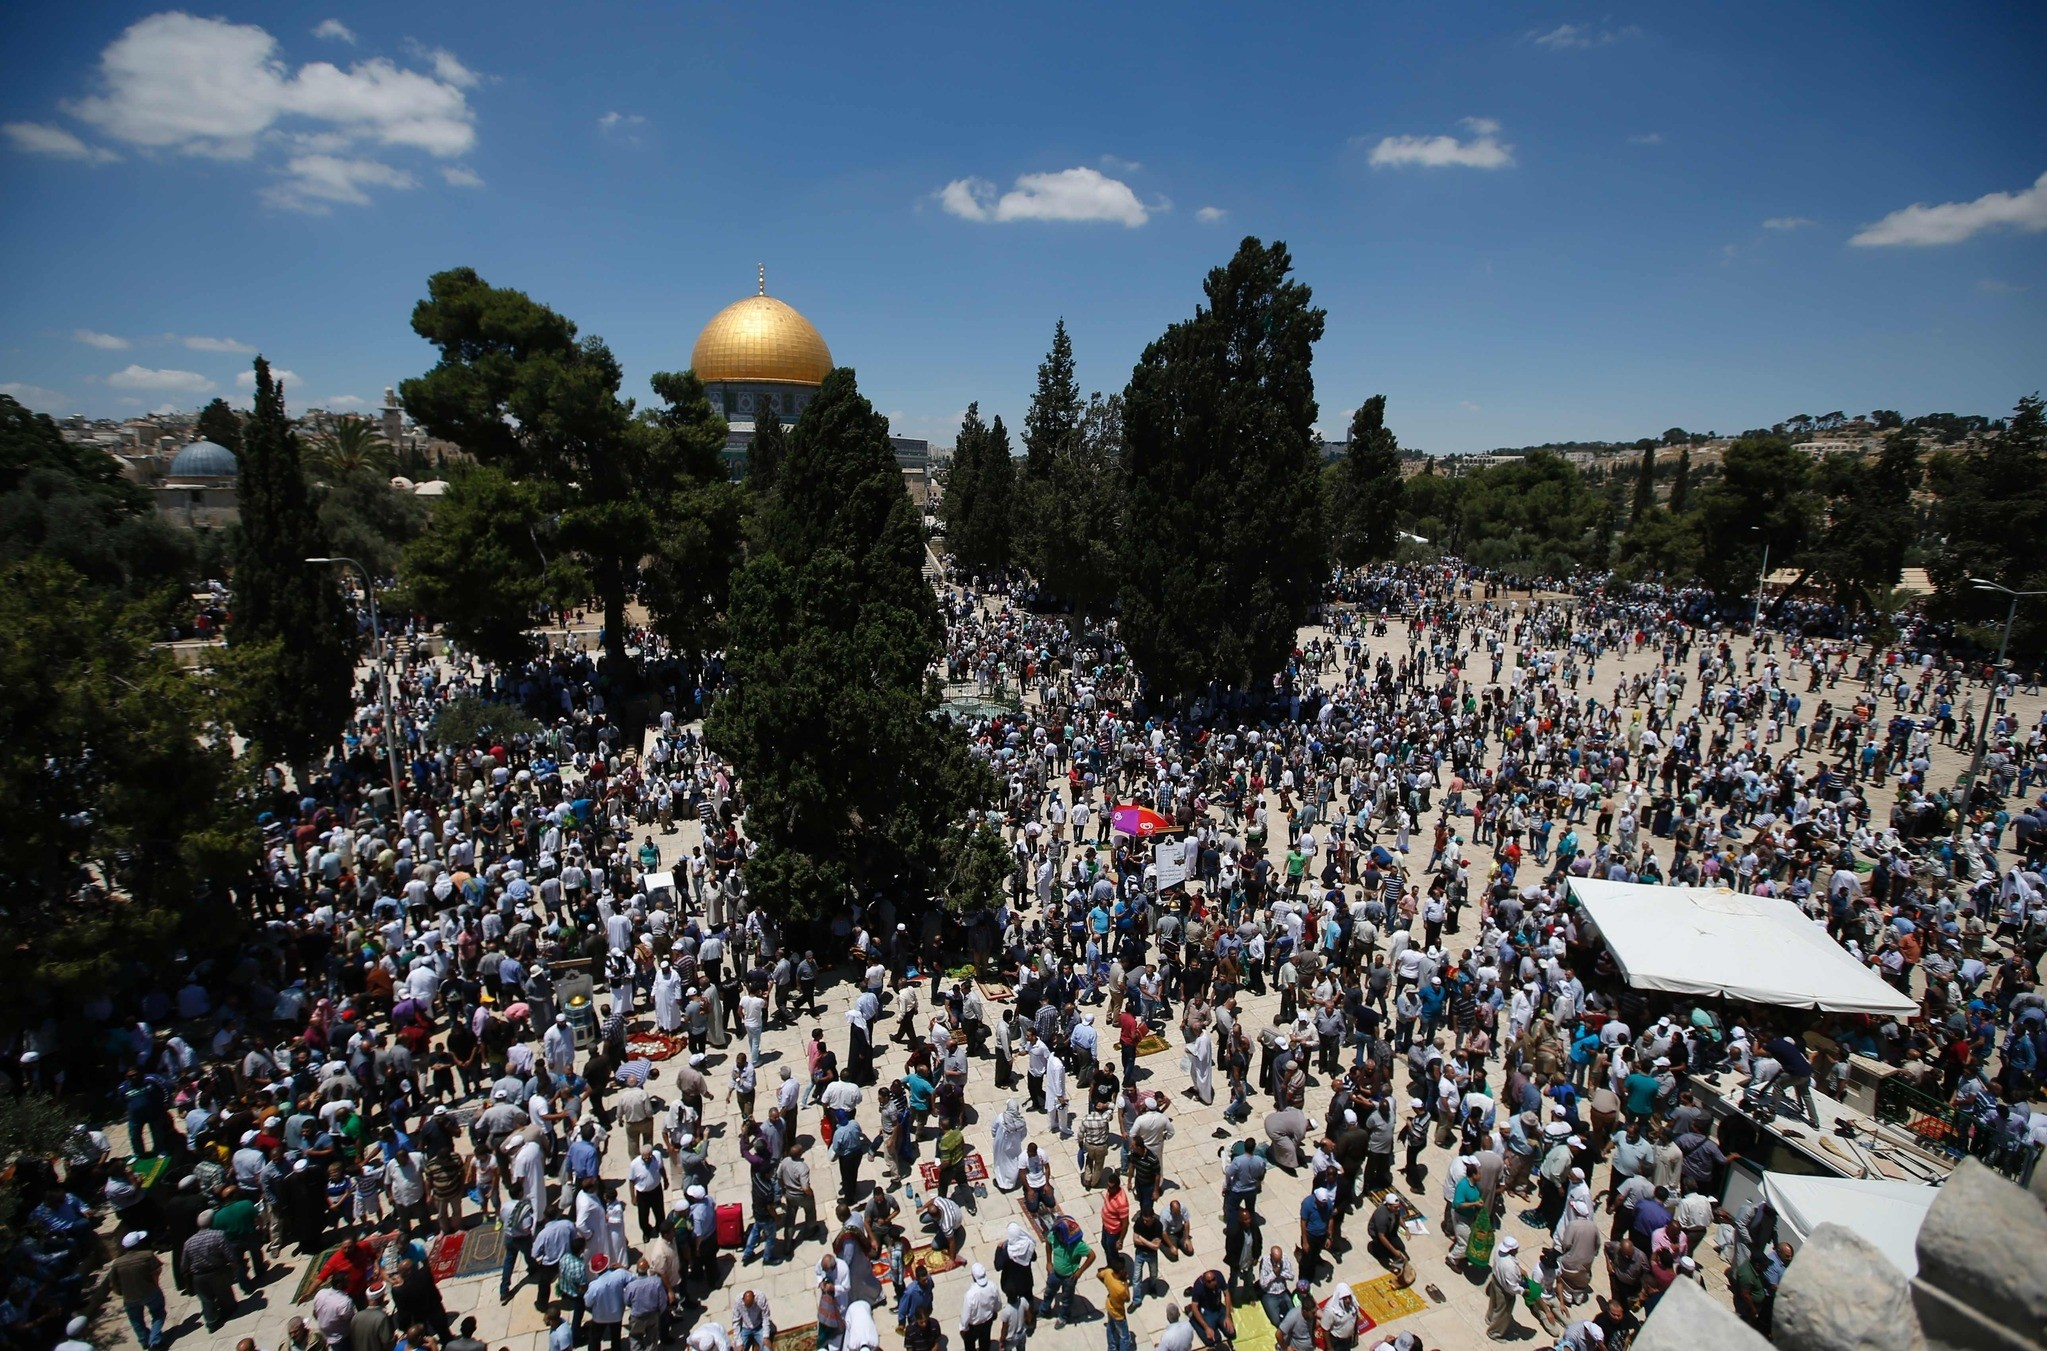 Palestinians pray in front of the Dome of the Rock at Jerusalem's Al-Asqa mosque compound during the first Friday prayers of the holy Muslim fasting month of Ramadan on June 10, 2016.  (AFP Photo)